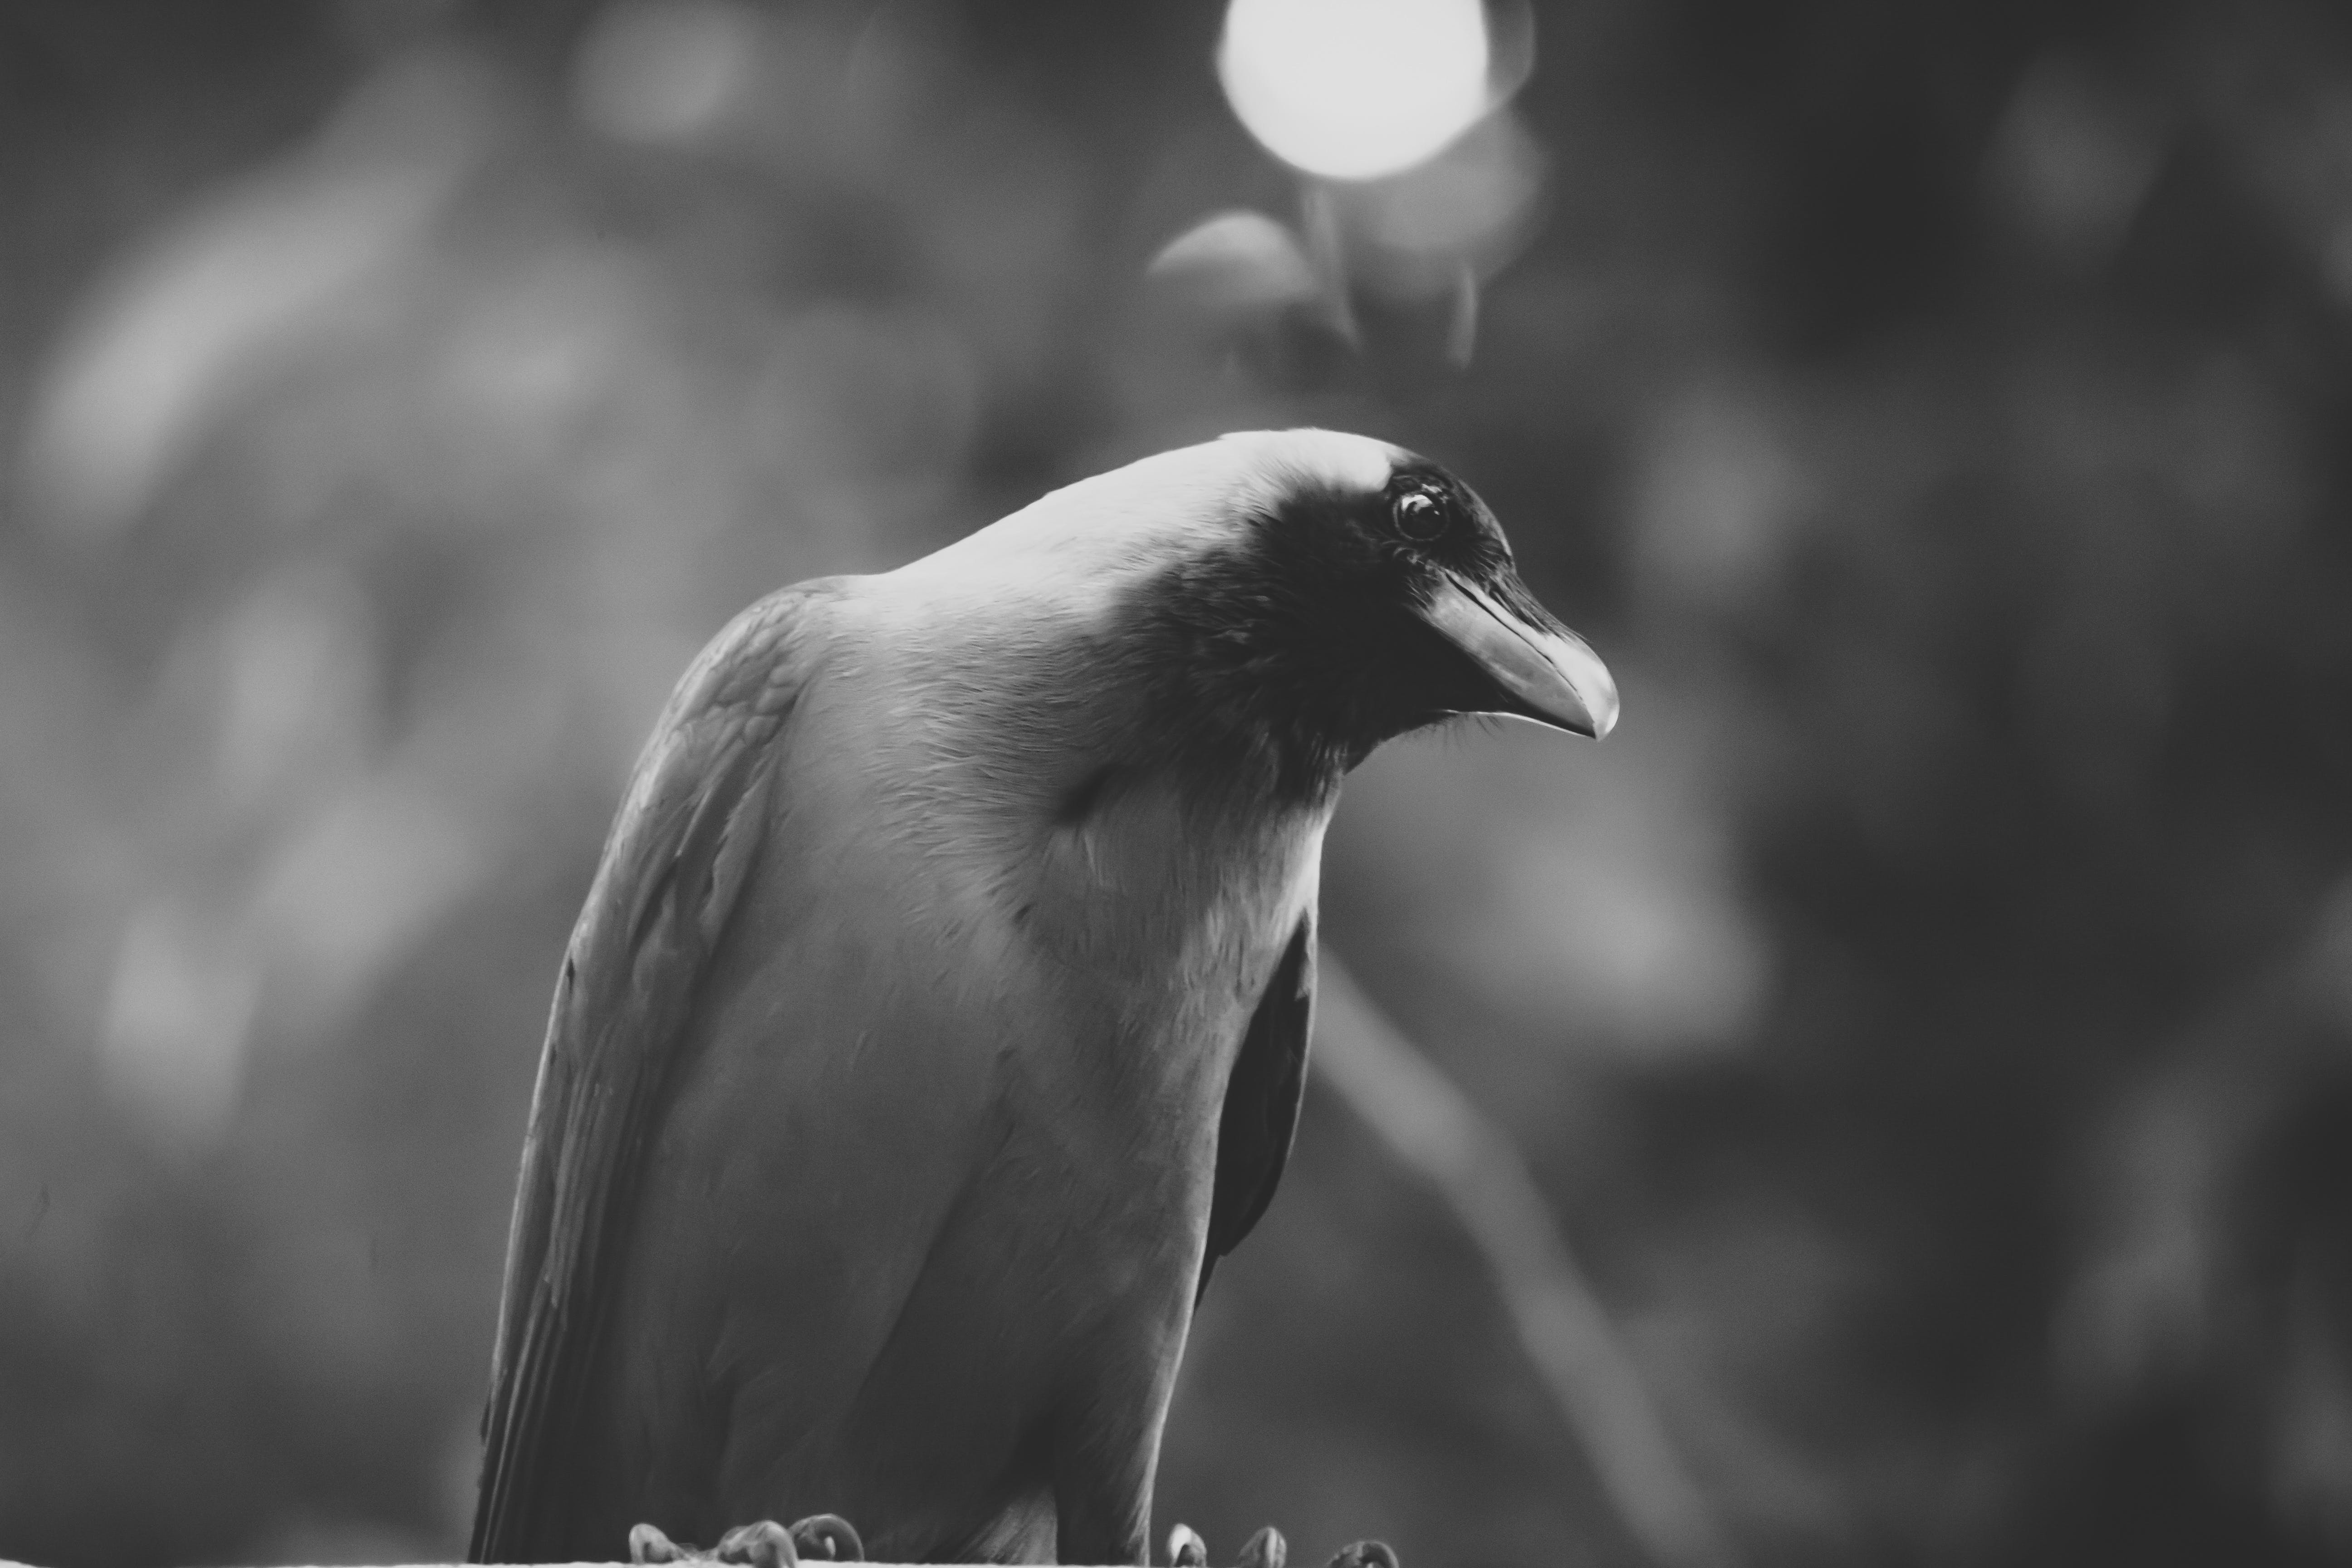 Grayscale Photography Of House Crow